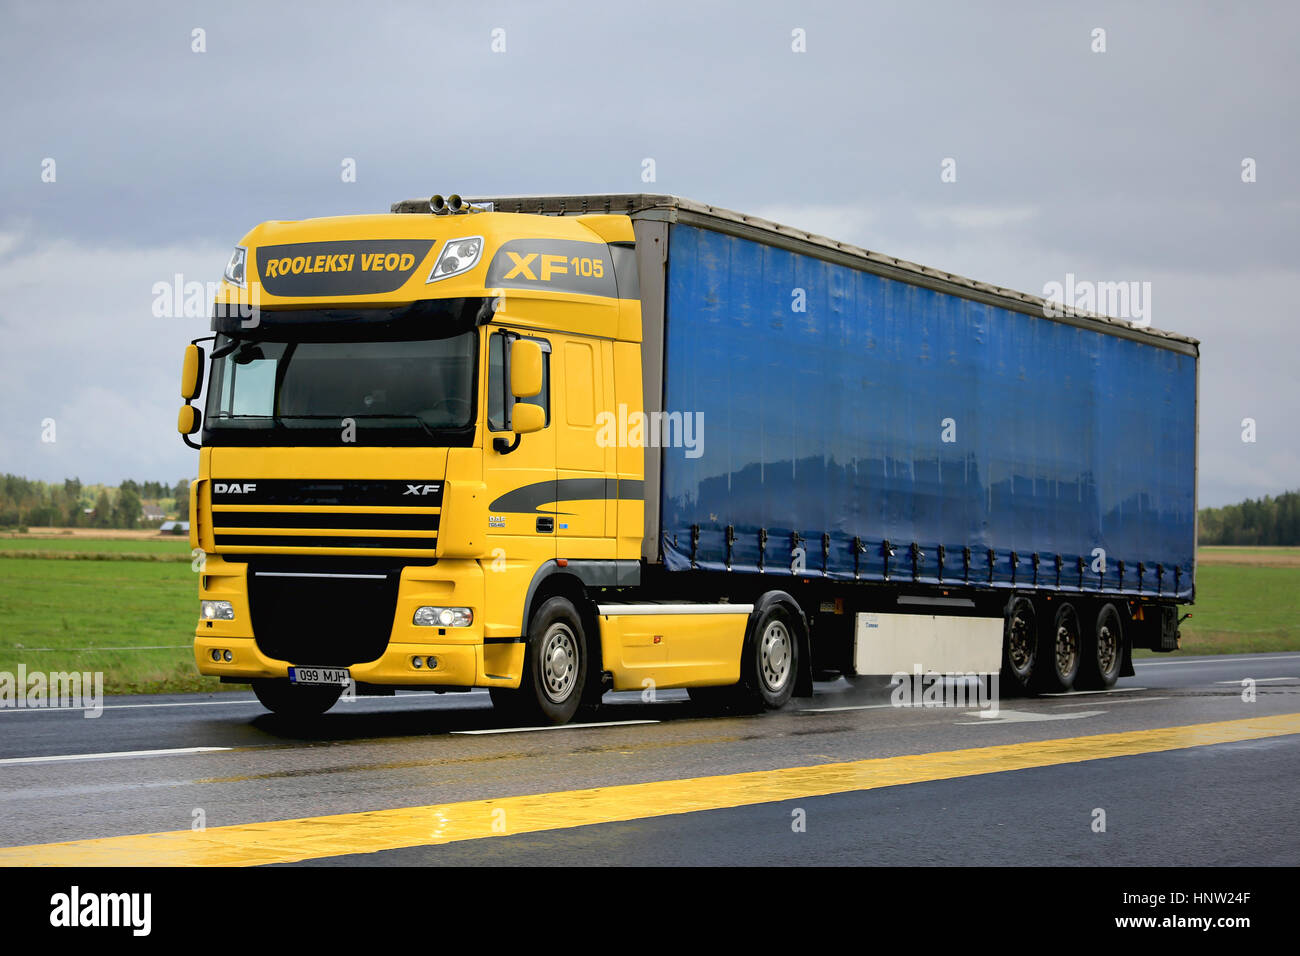 Daf Xf 105 460 Stock Photos & Daf Xf 105 460 Stock Images